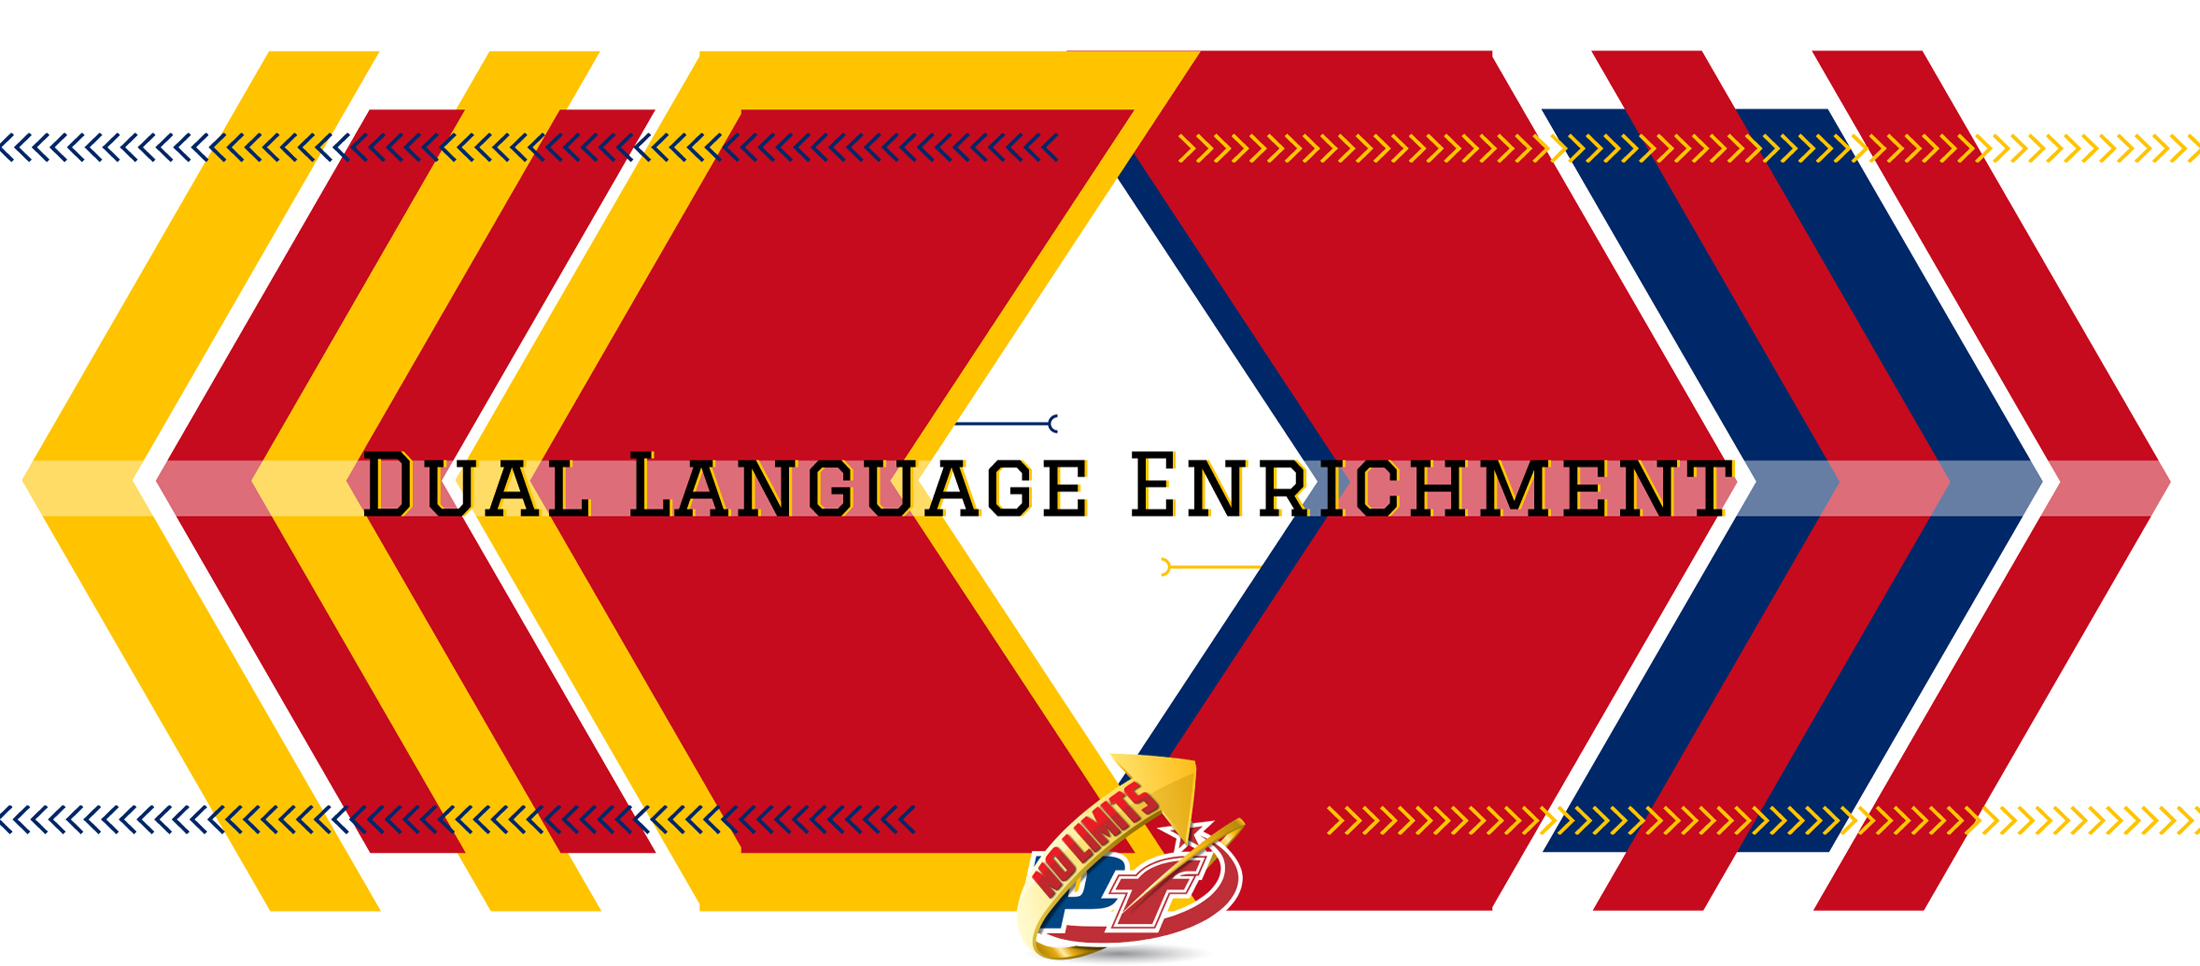 Dual Language Enrichment